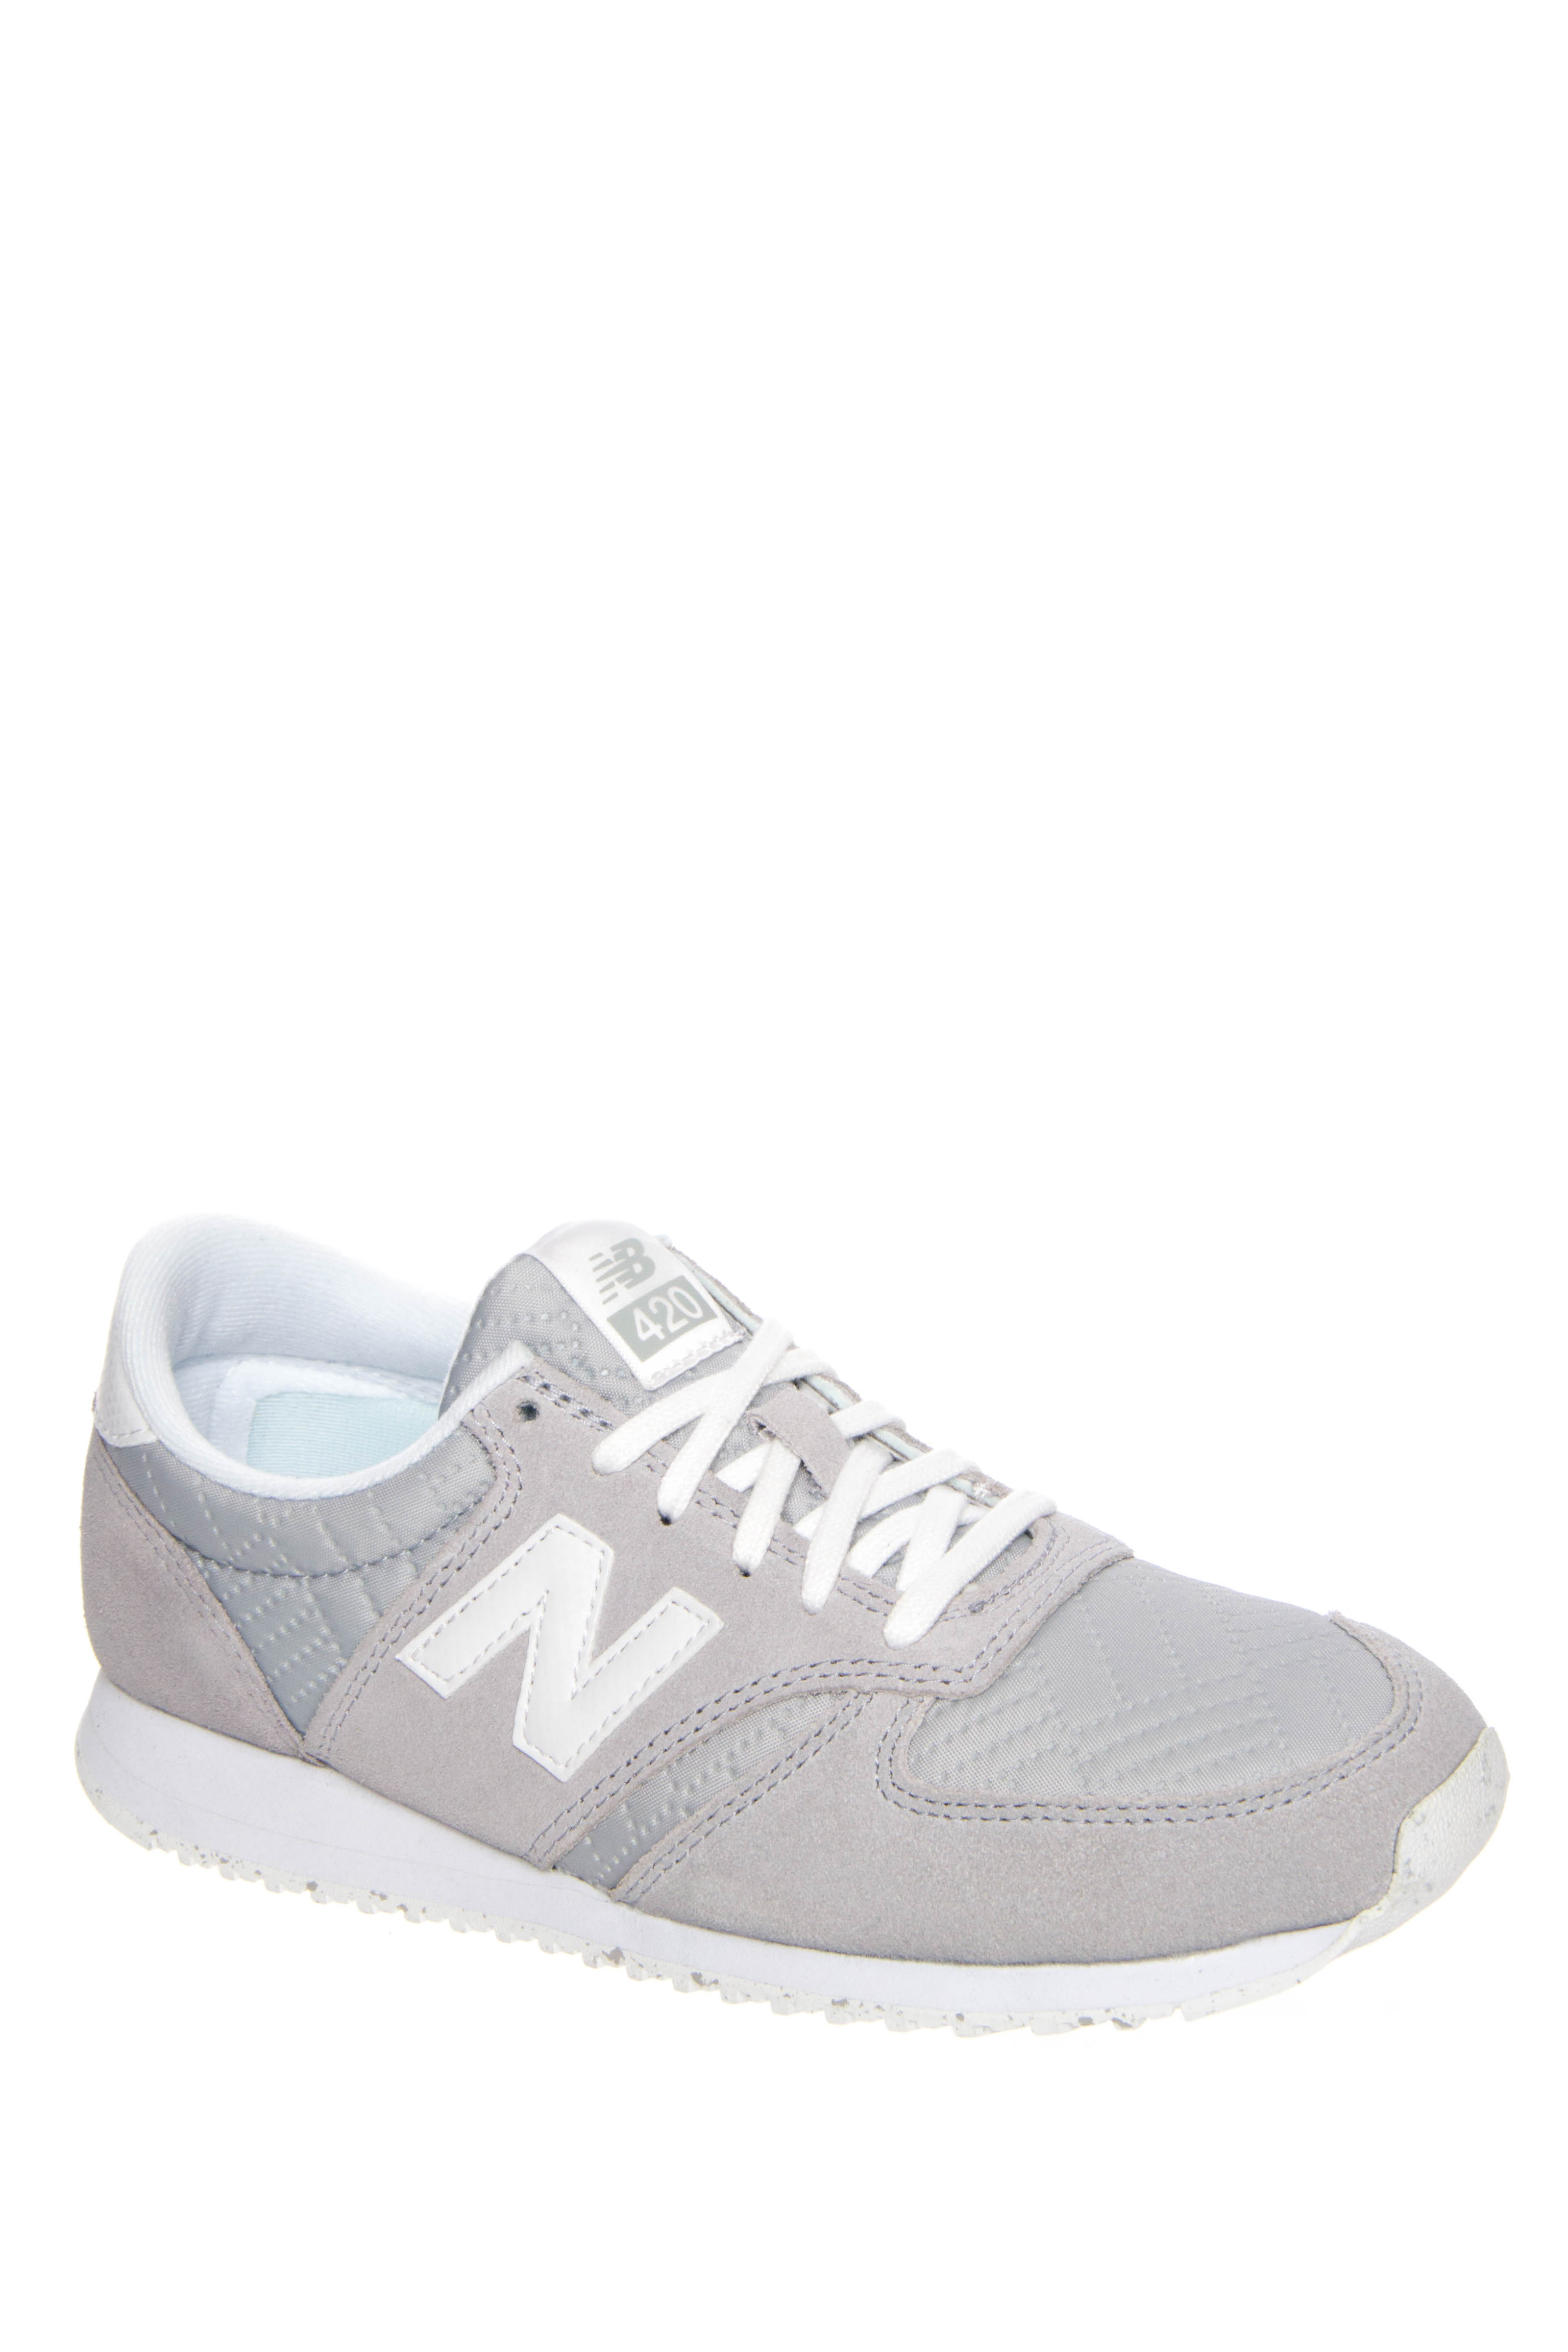 New Balance 420 70s Running Low Top Sneakers - Silver Mink / White